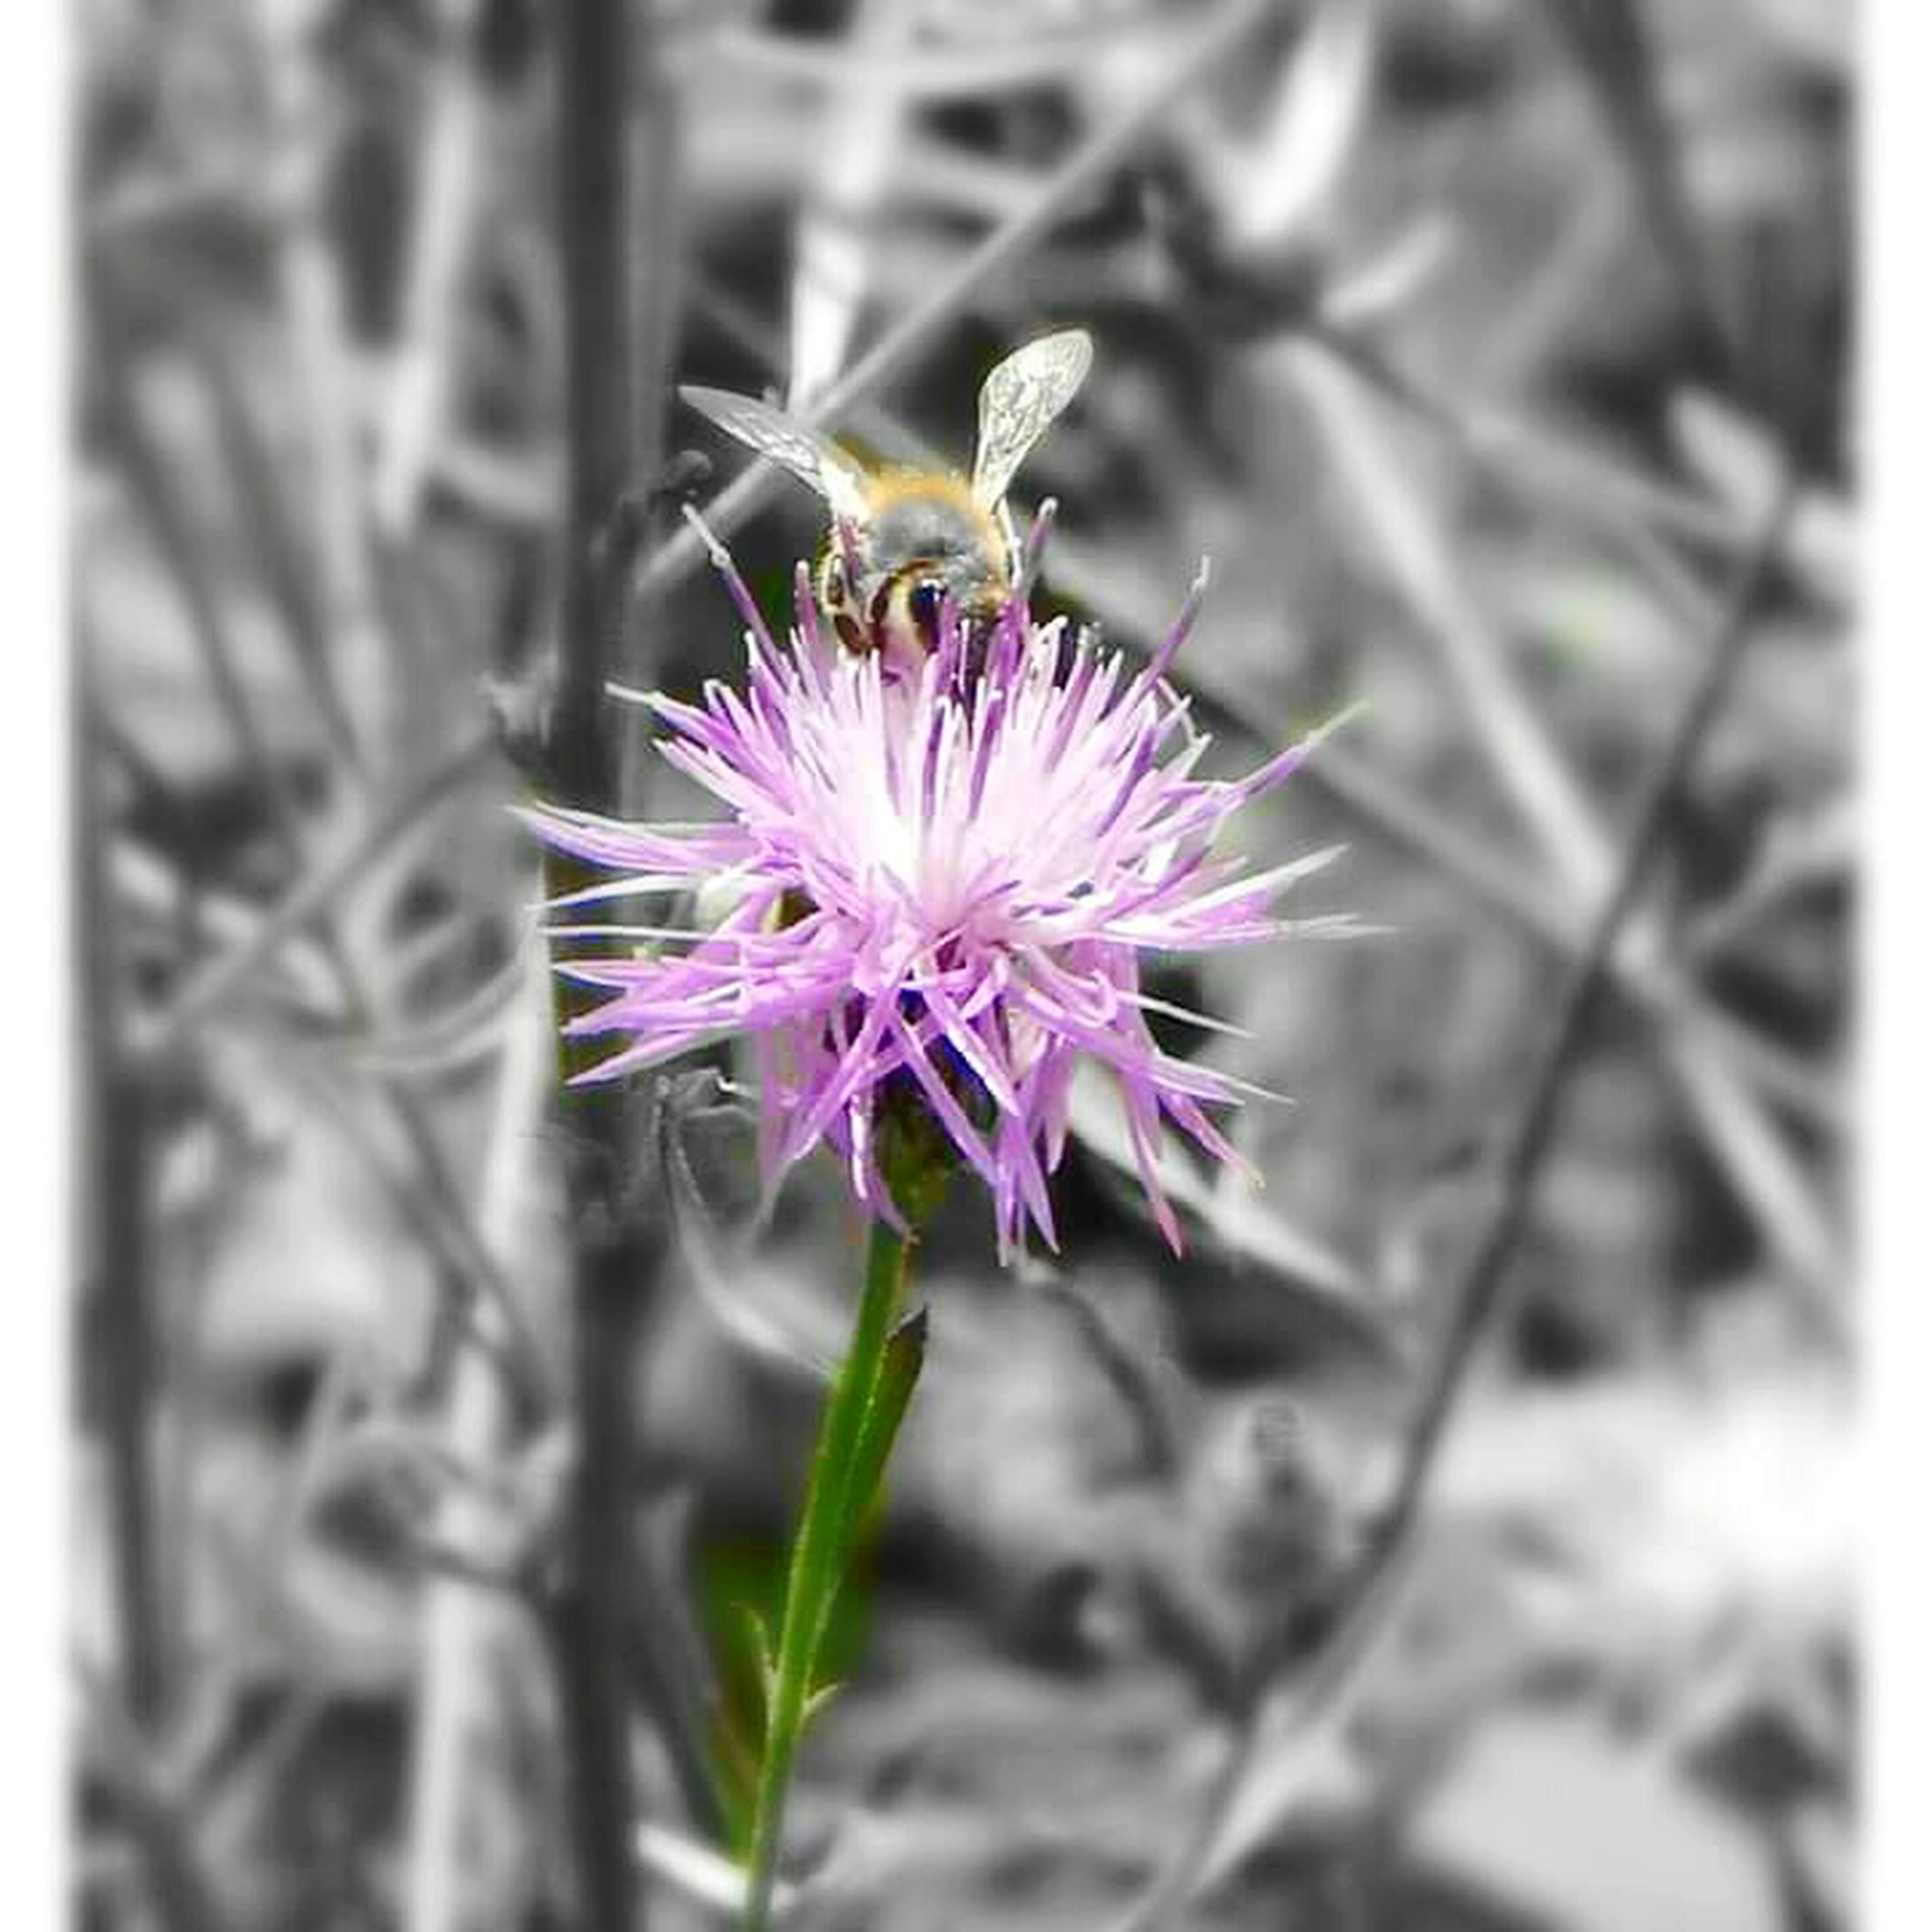 flower, petal, freshness, fragility, flower head, purple, growth, beauty in nature, close-up, single flower, blooming, focus on foreground, plant, nature, pollen, pink color, insect, one animal, in bloom, pollination